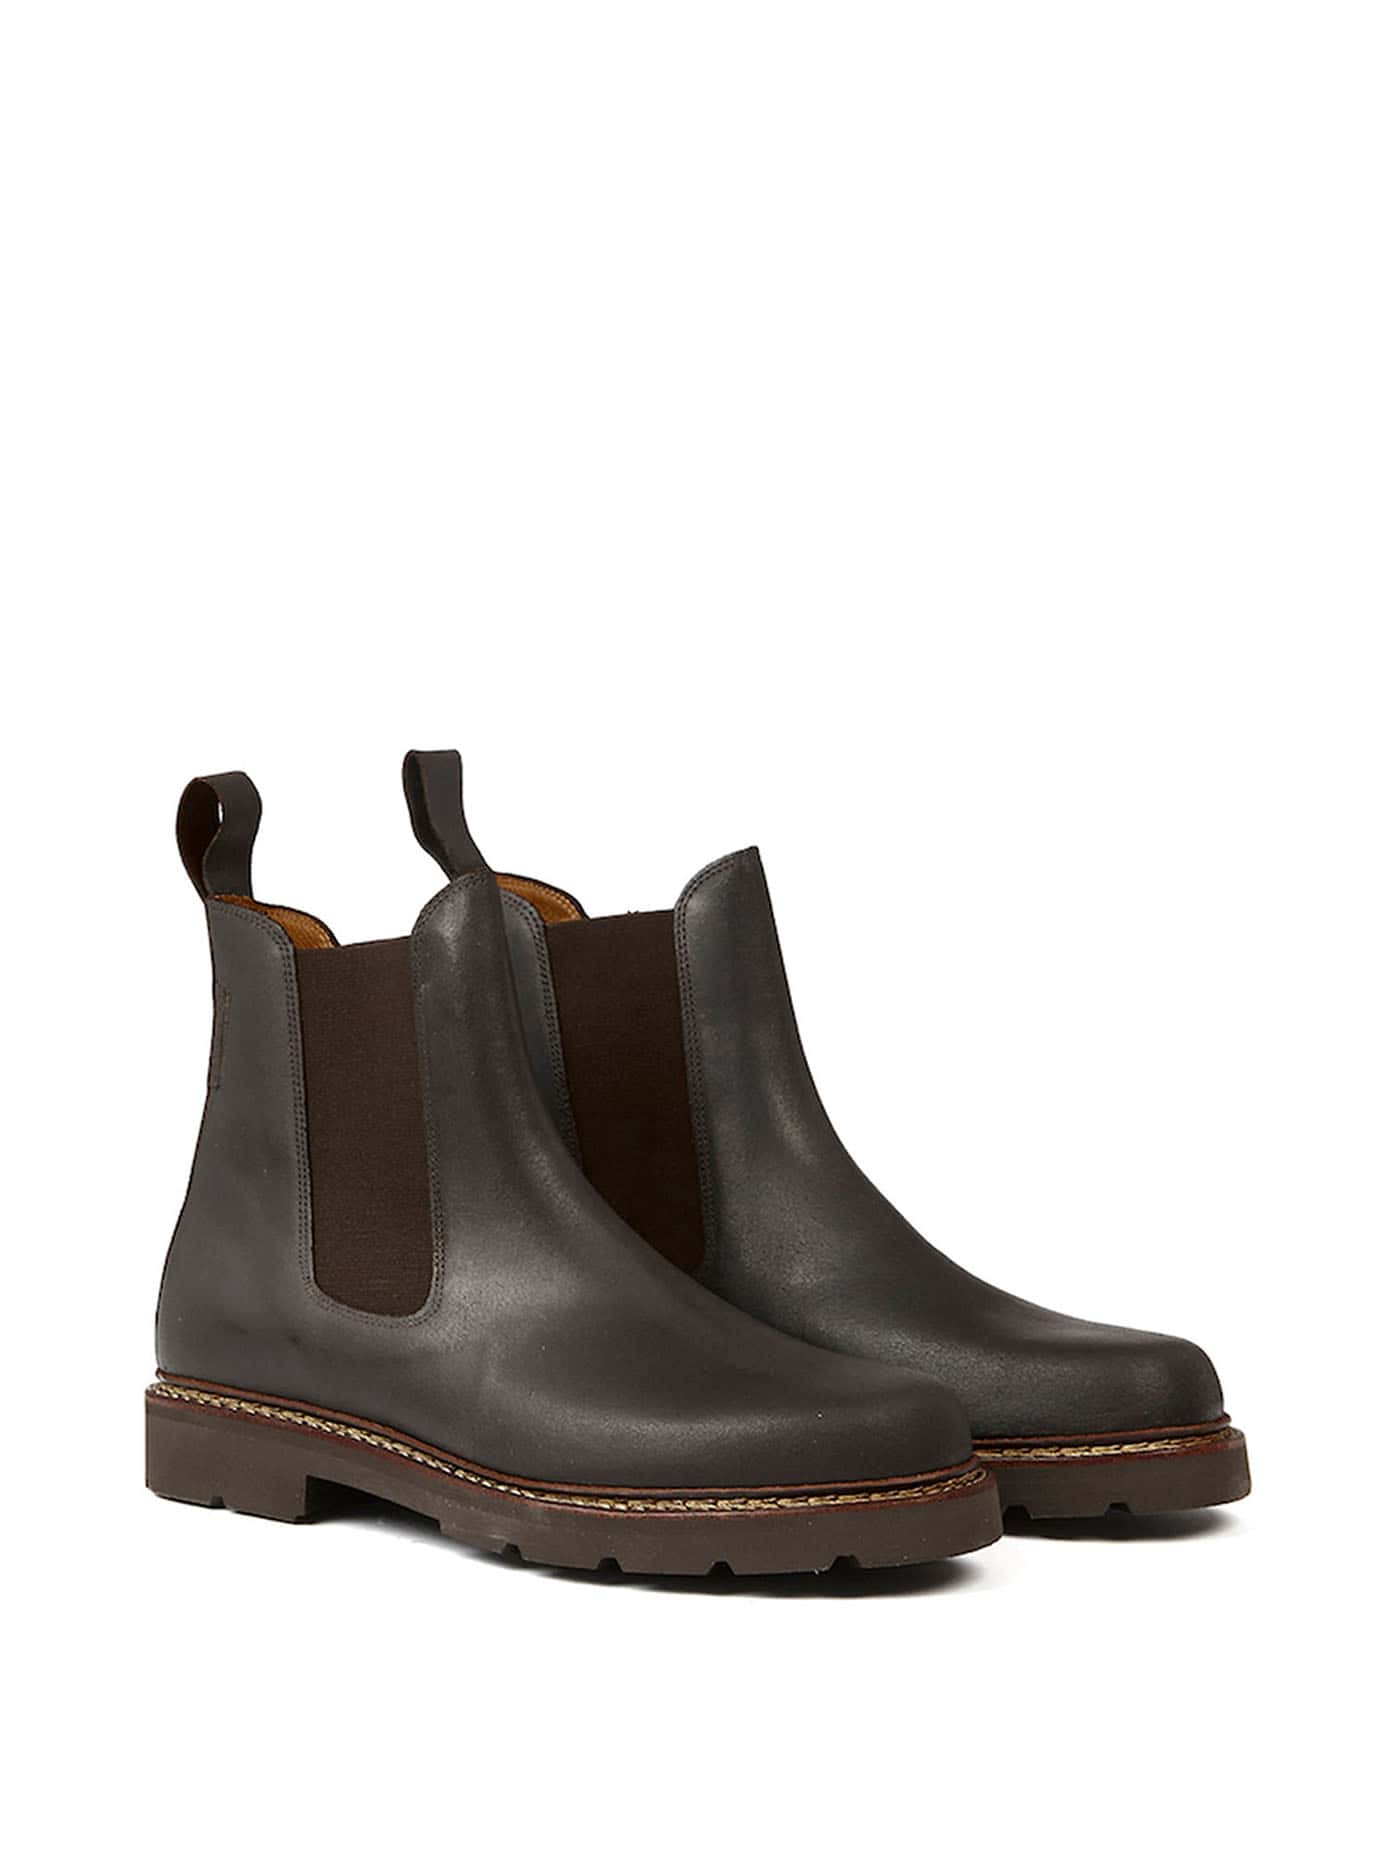 Chaussures cuir homme Quercyhomme | AIGLE